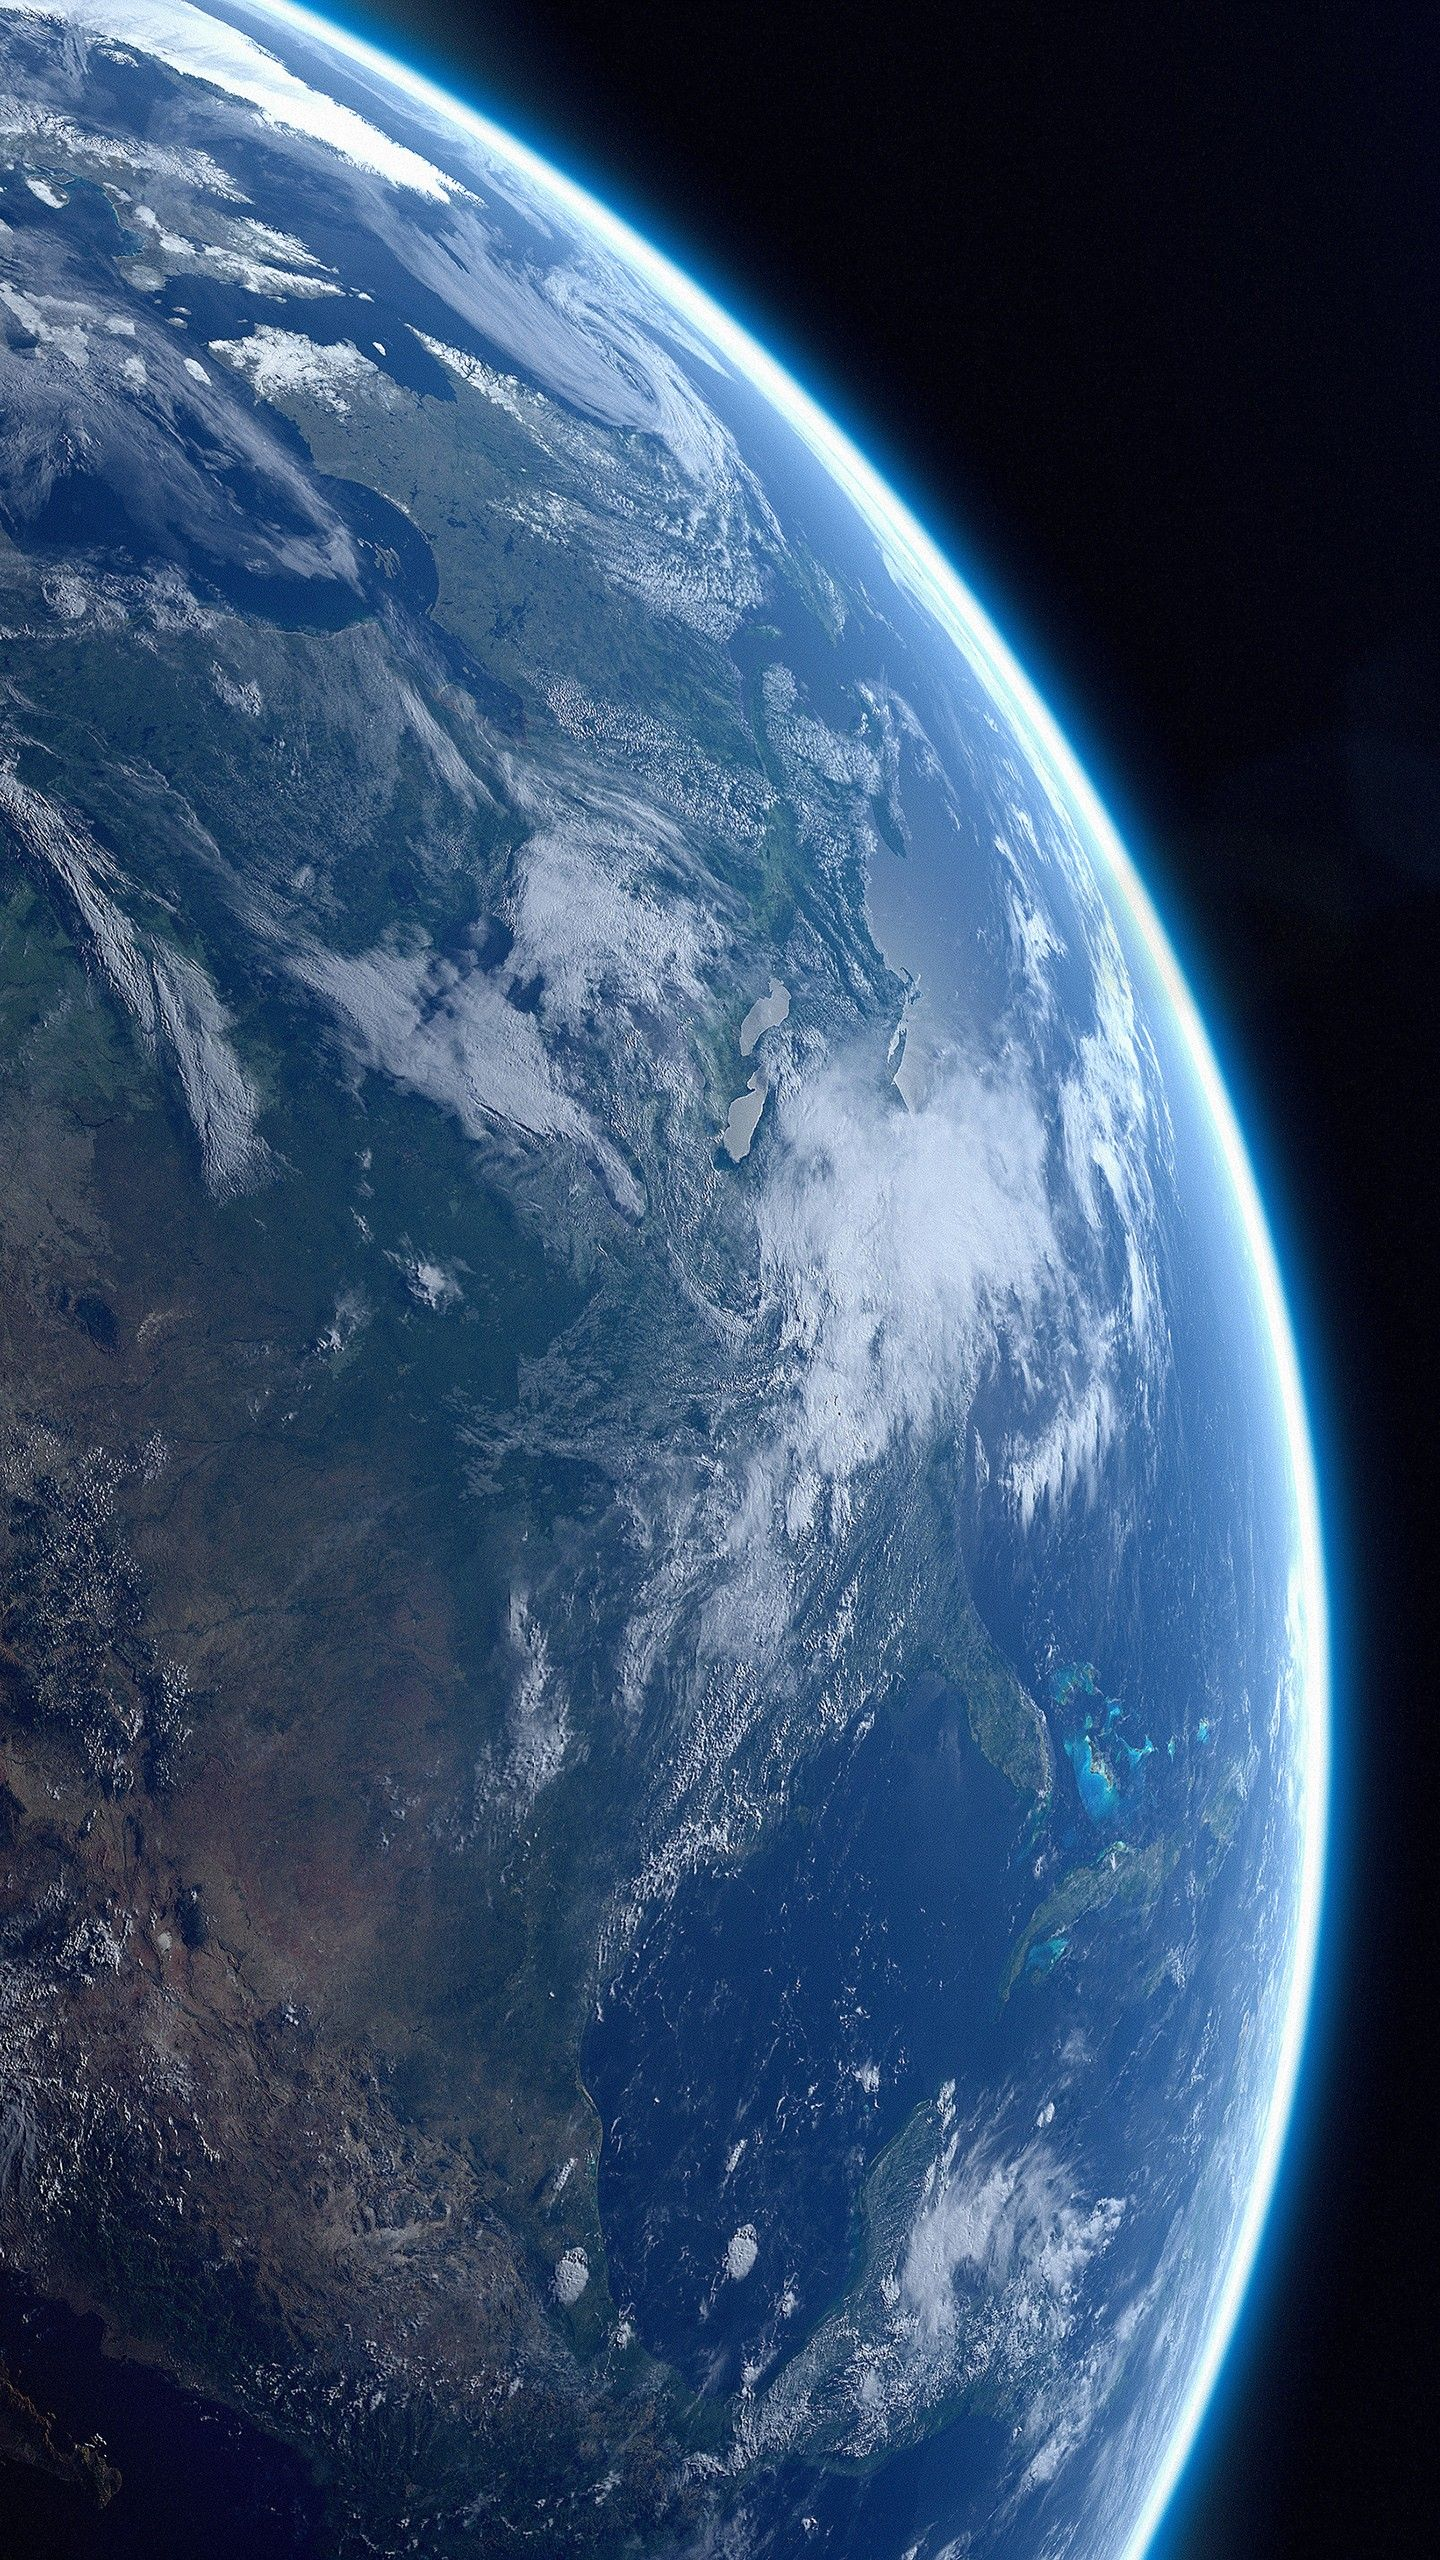 Earth 8k Wallpapers - Top Free Earth 8k Backgrounds ...